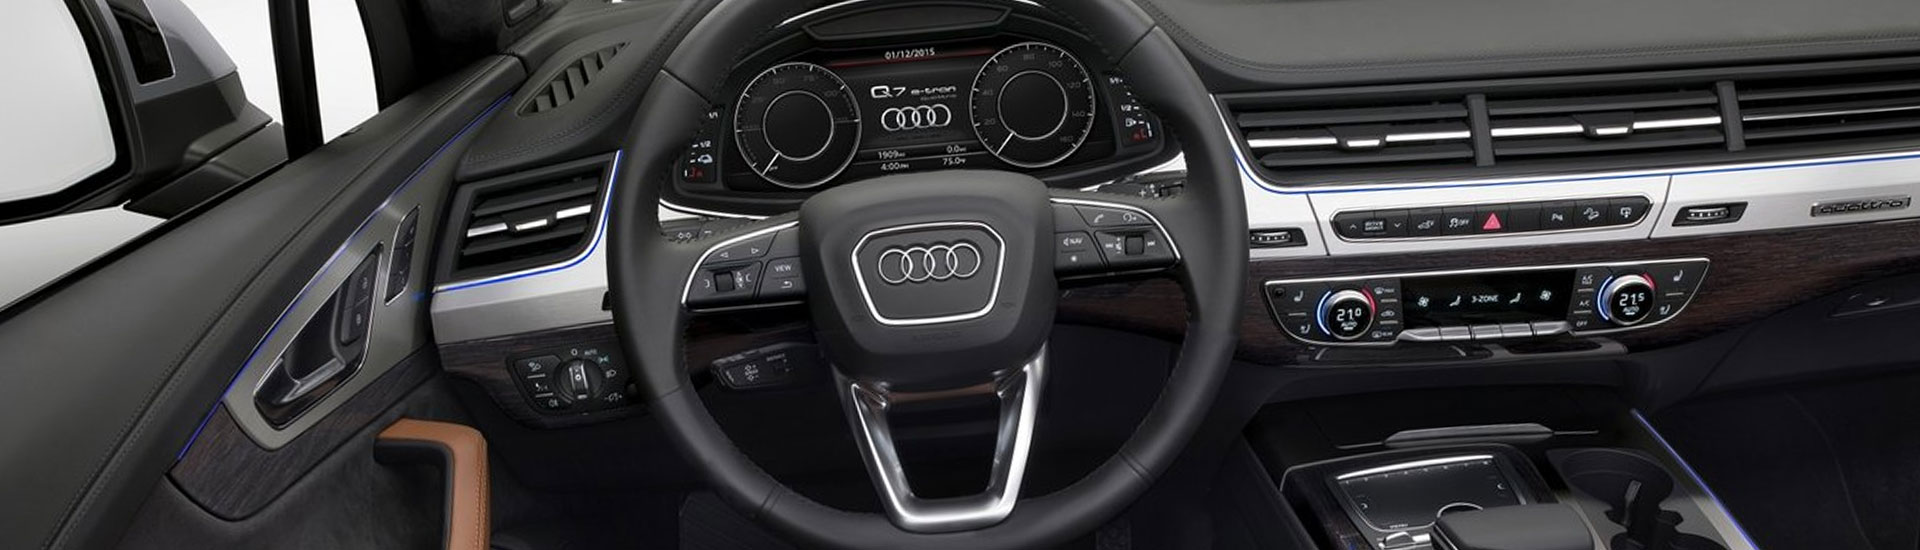 Audi Q7 Dash Kits Custom Audi Q7 Dash Kit